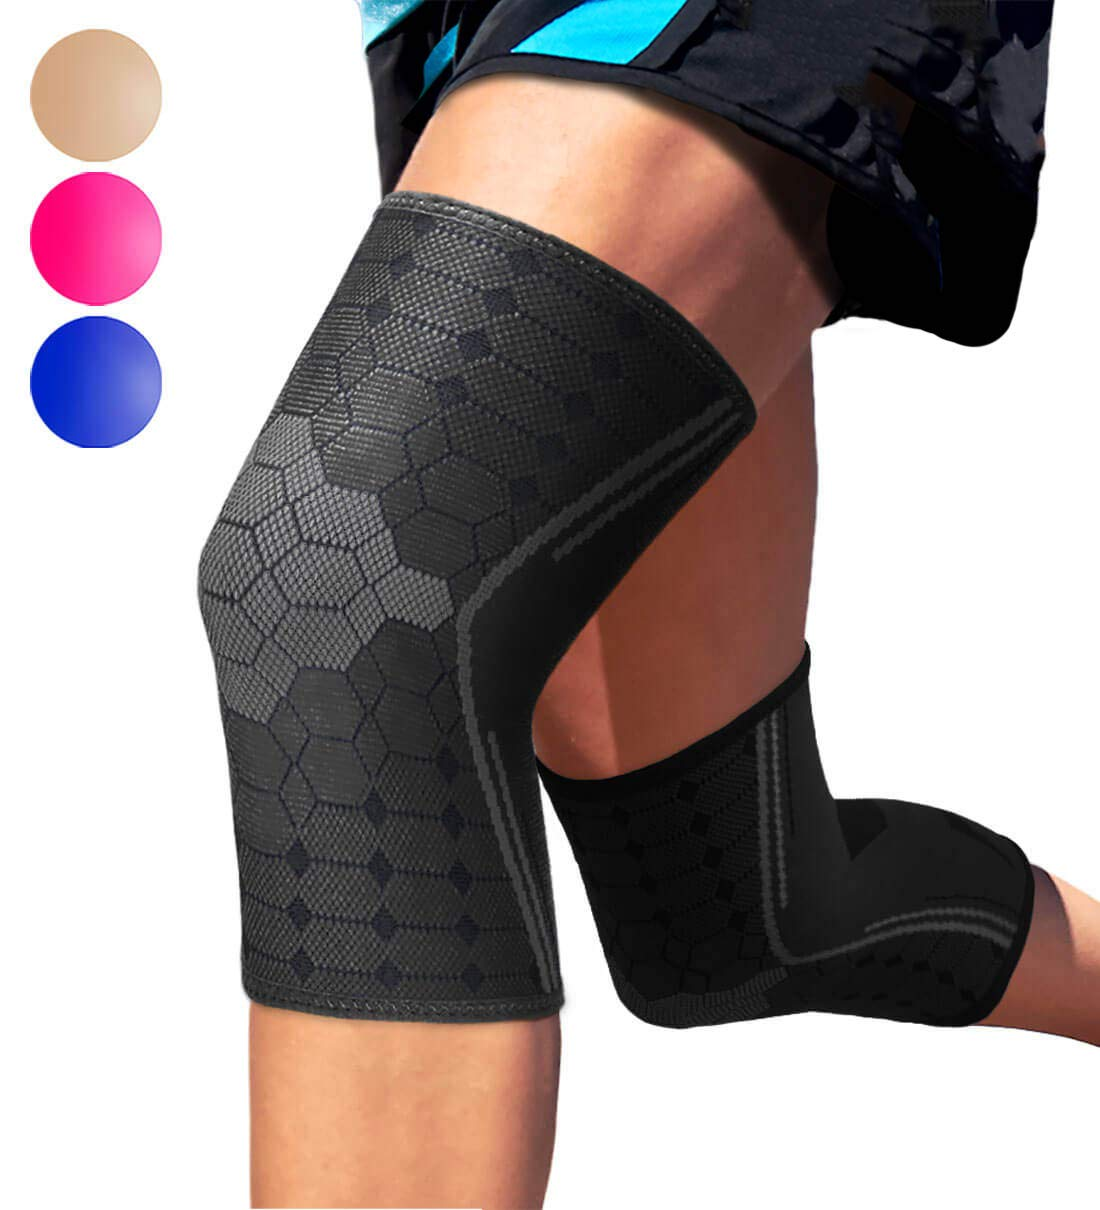 Sparthos Knee Compression Sleeves by (Pair) - Support for Sports, Running, Joint Pain Relief - Knee Brace for Men and Women Walking Cycling Football Tennis Basketball Hiking Workout Jogging (Black-L) by Sparthos